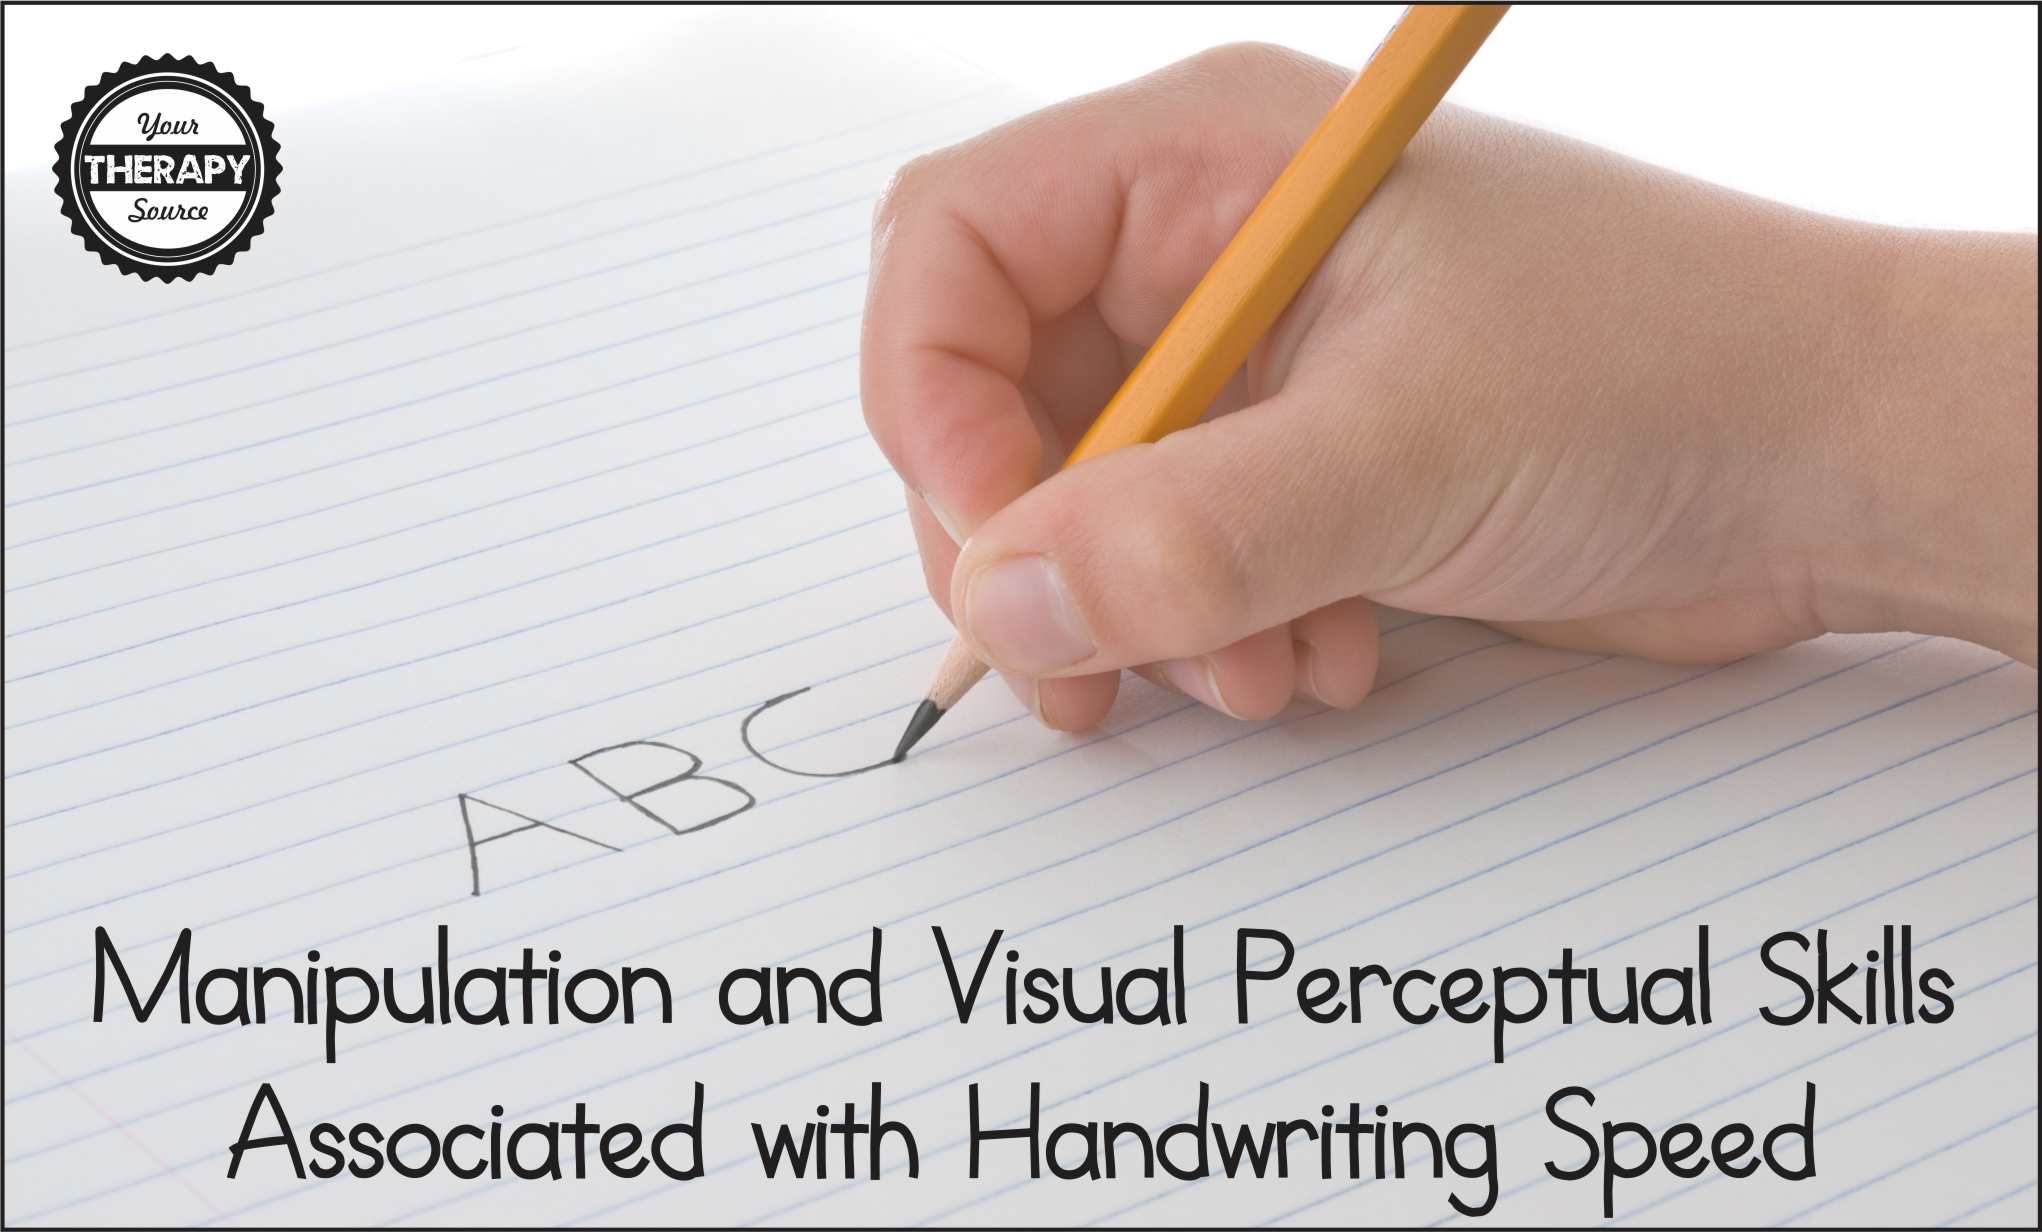 Handwriting Speed Associated With Manipulation And Visual